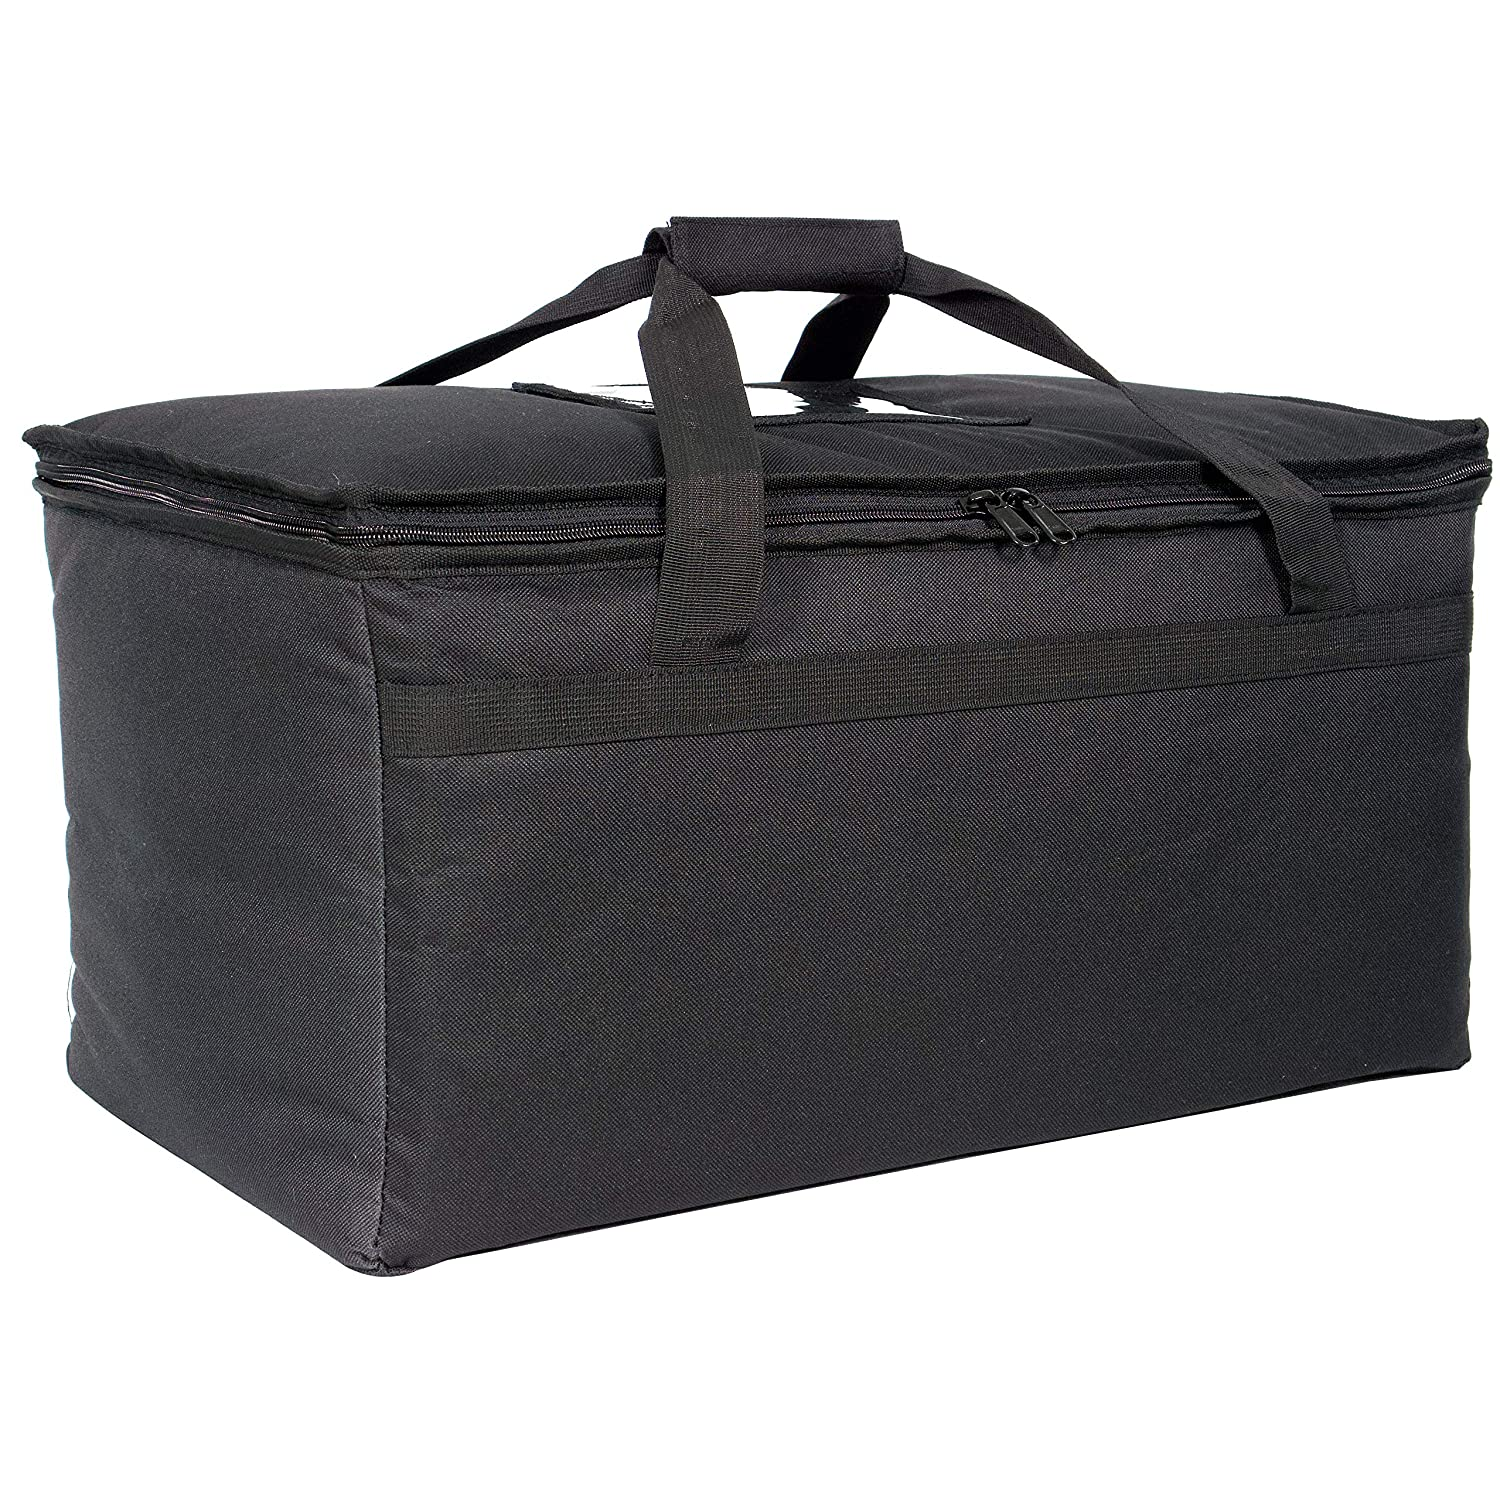 Ateny - Commercial Quality Food Delivery Bag - Heavy-Duty Durable Bags